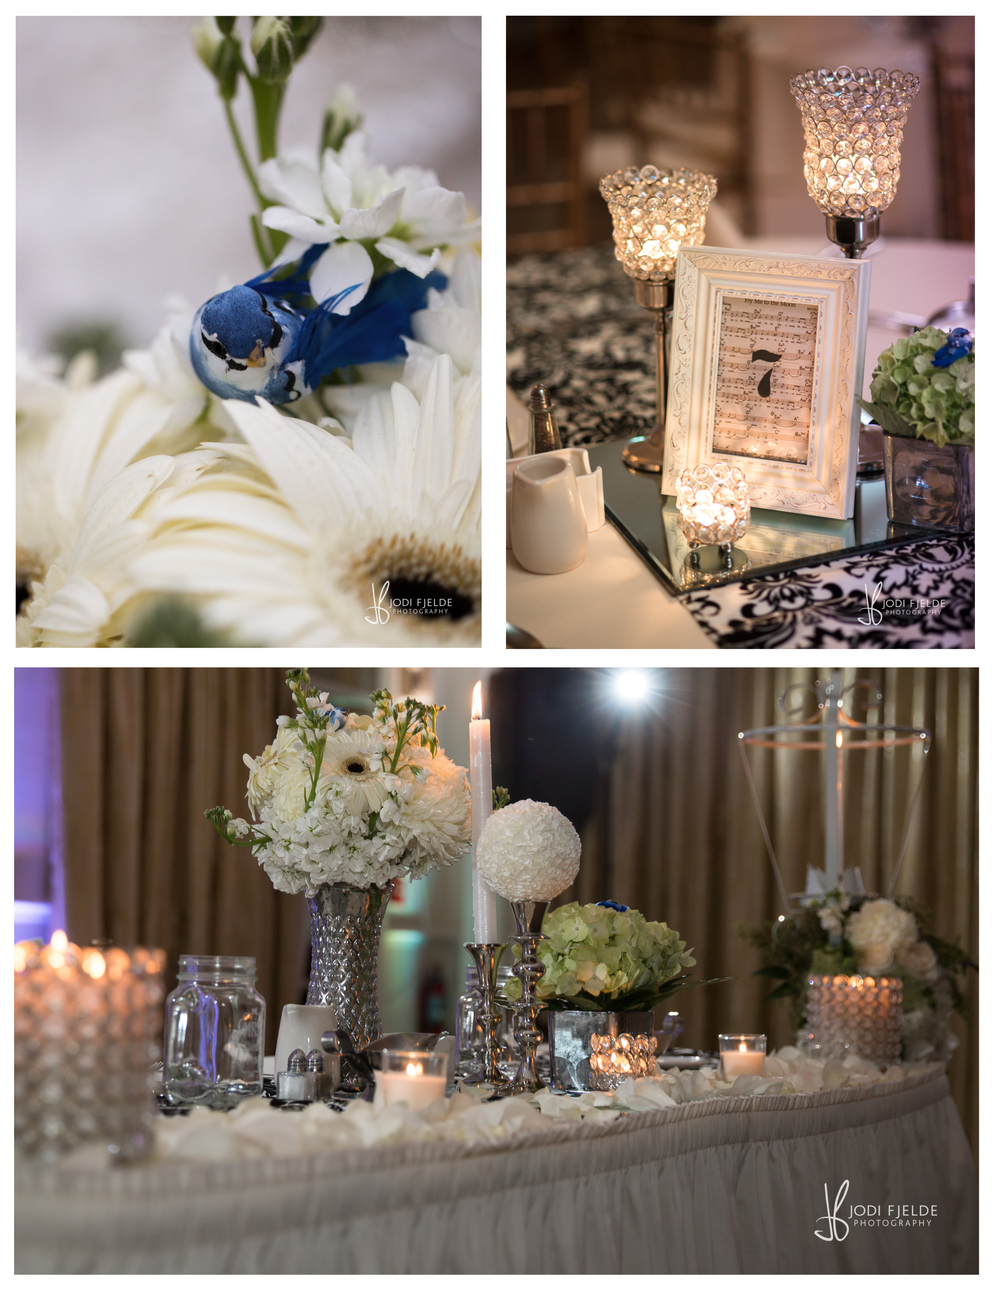 Highland_Manor_Apopka_Florida_wedding_Jackie_&_Tim_photography_jodi_Fjelde_photography-41.jpg